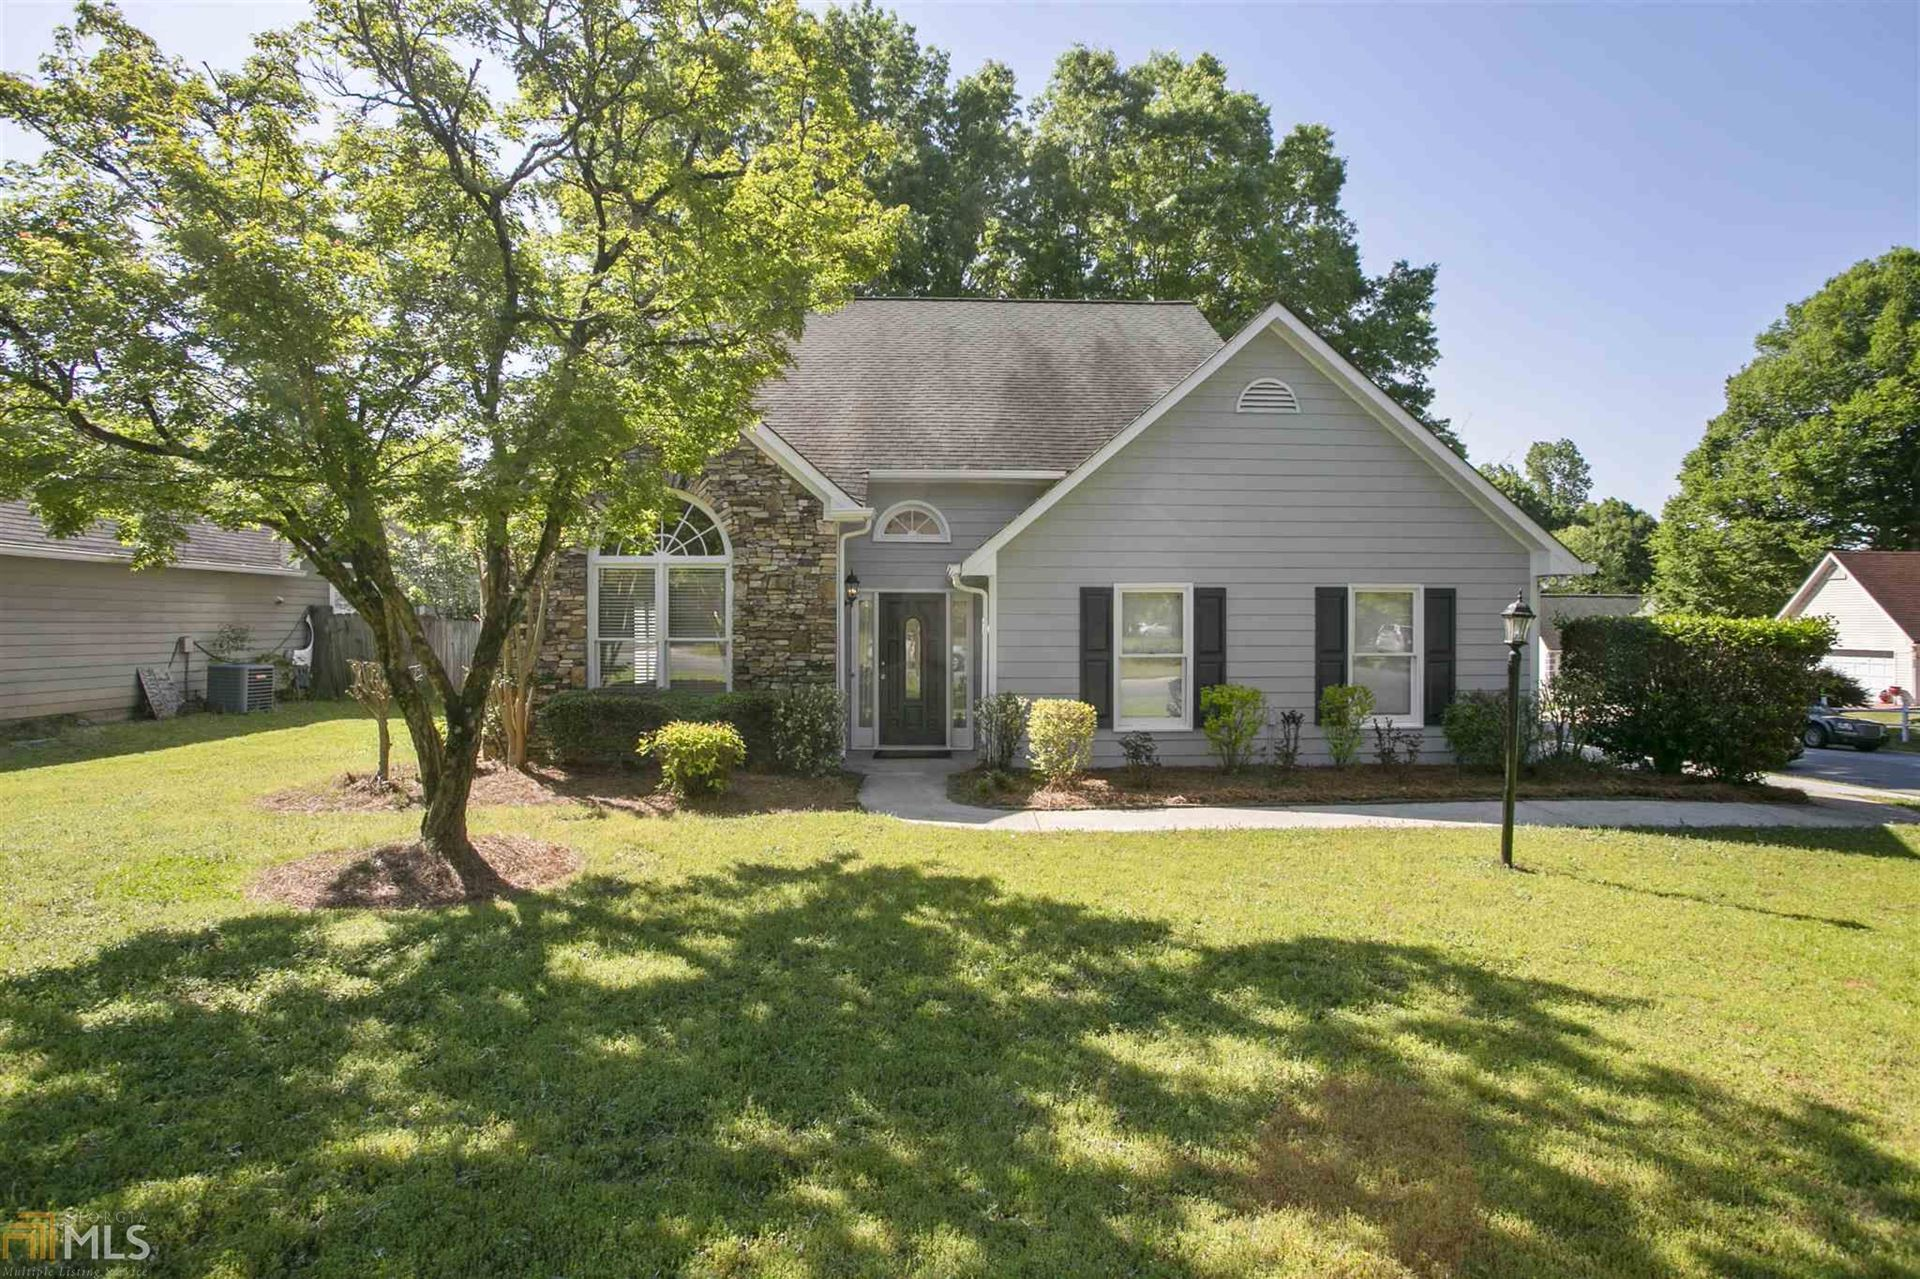 2042 TRENT VALLEY CT, Lawrenceville, GA 30044 - #: 8780284